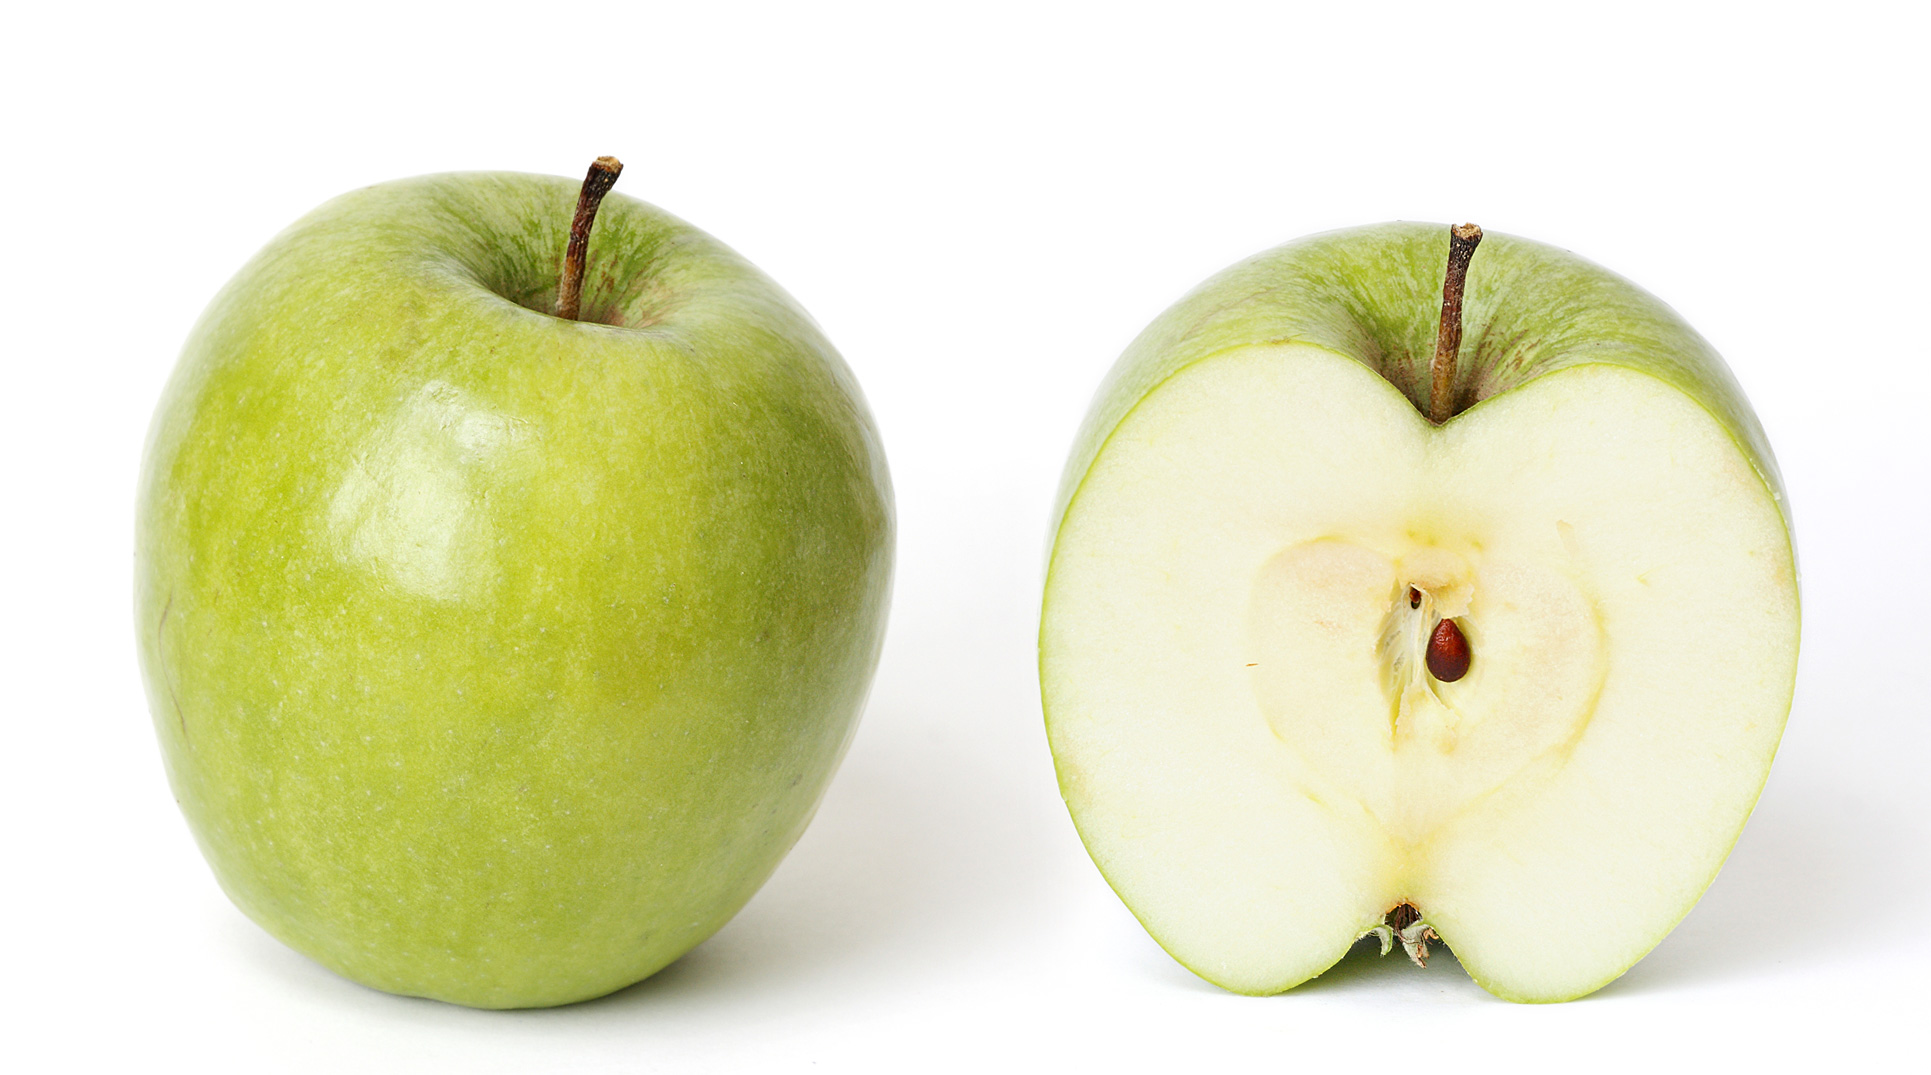 File:Granny smith and cross section.jpg - Wikipedia, the free ...